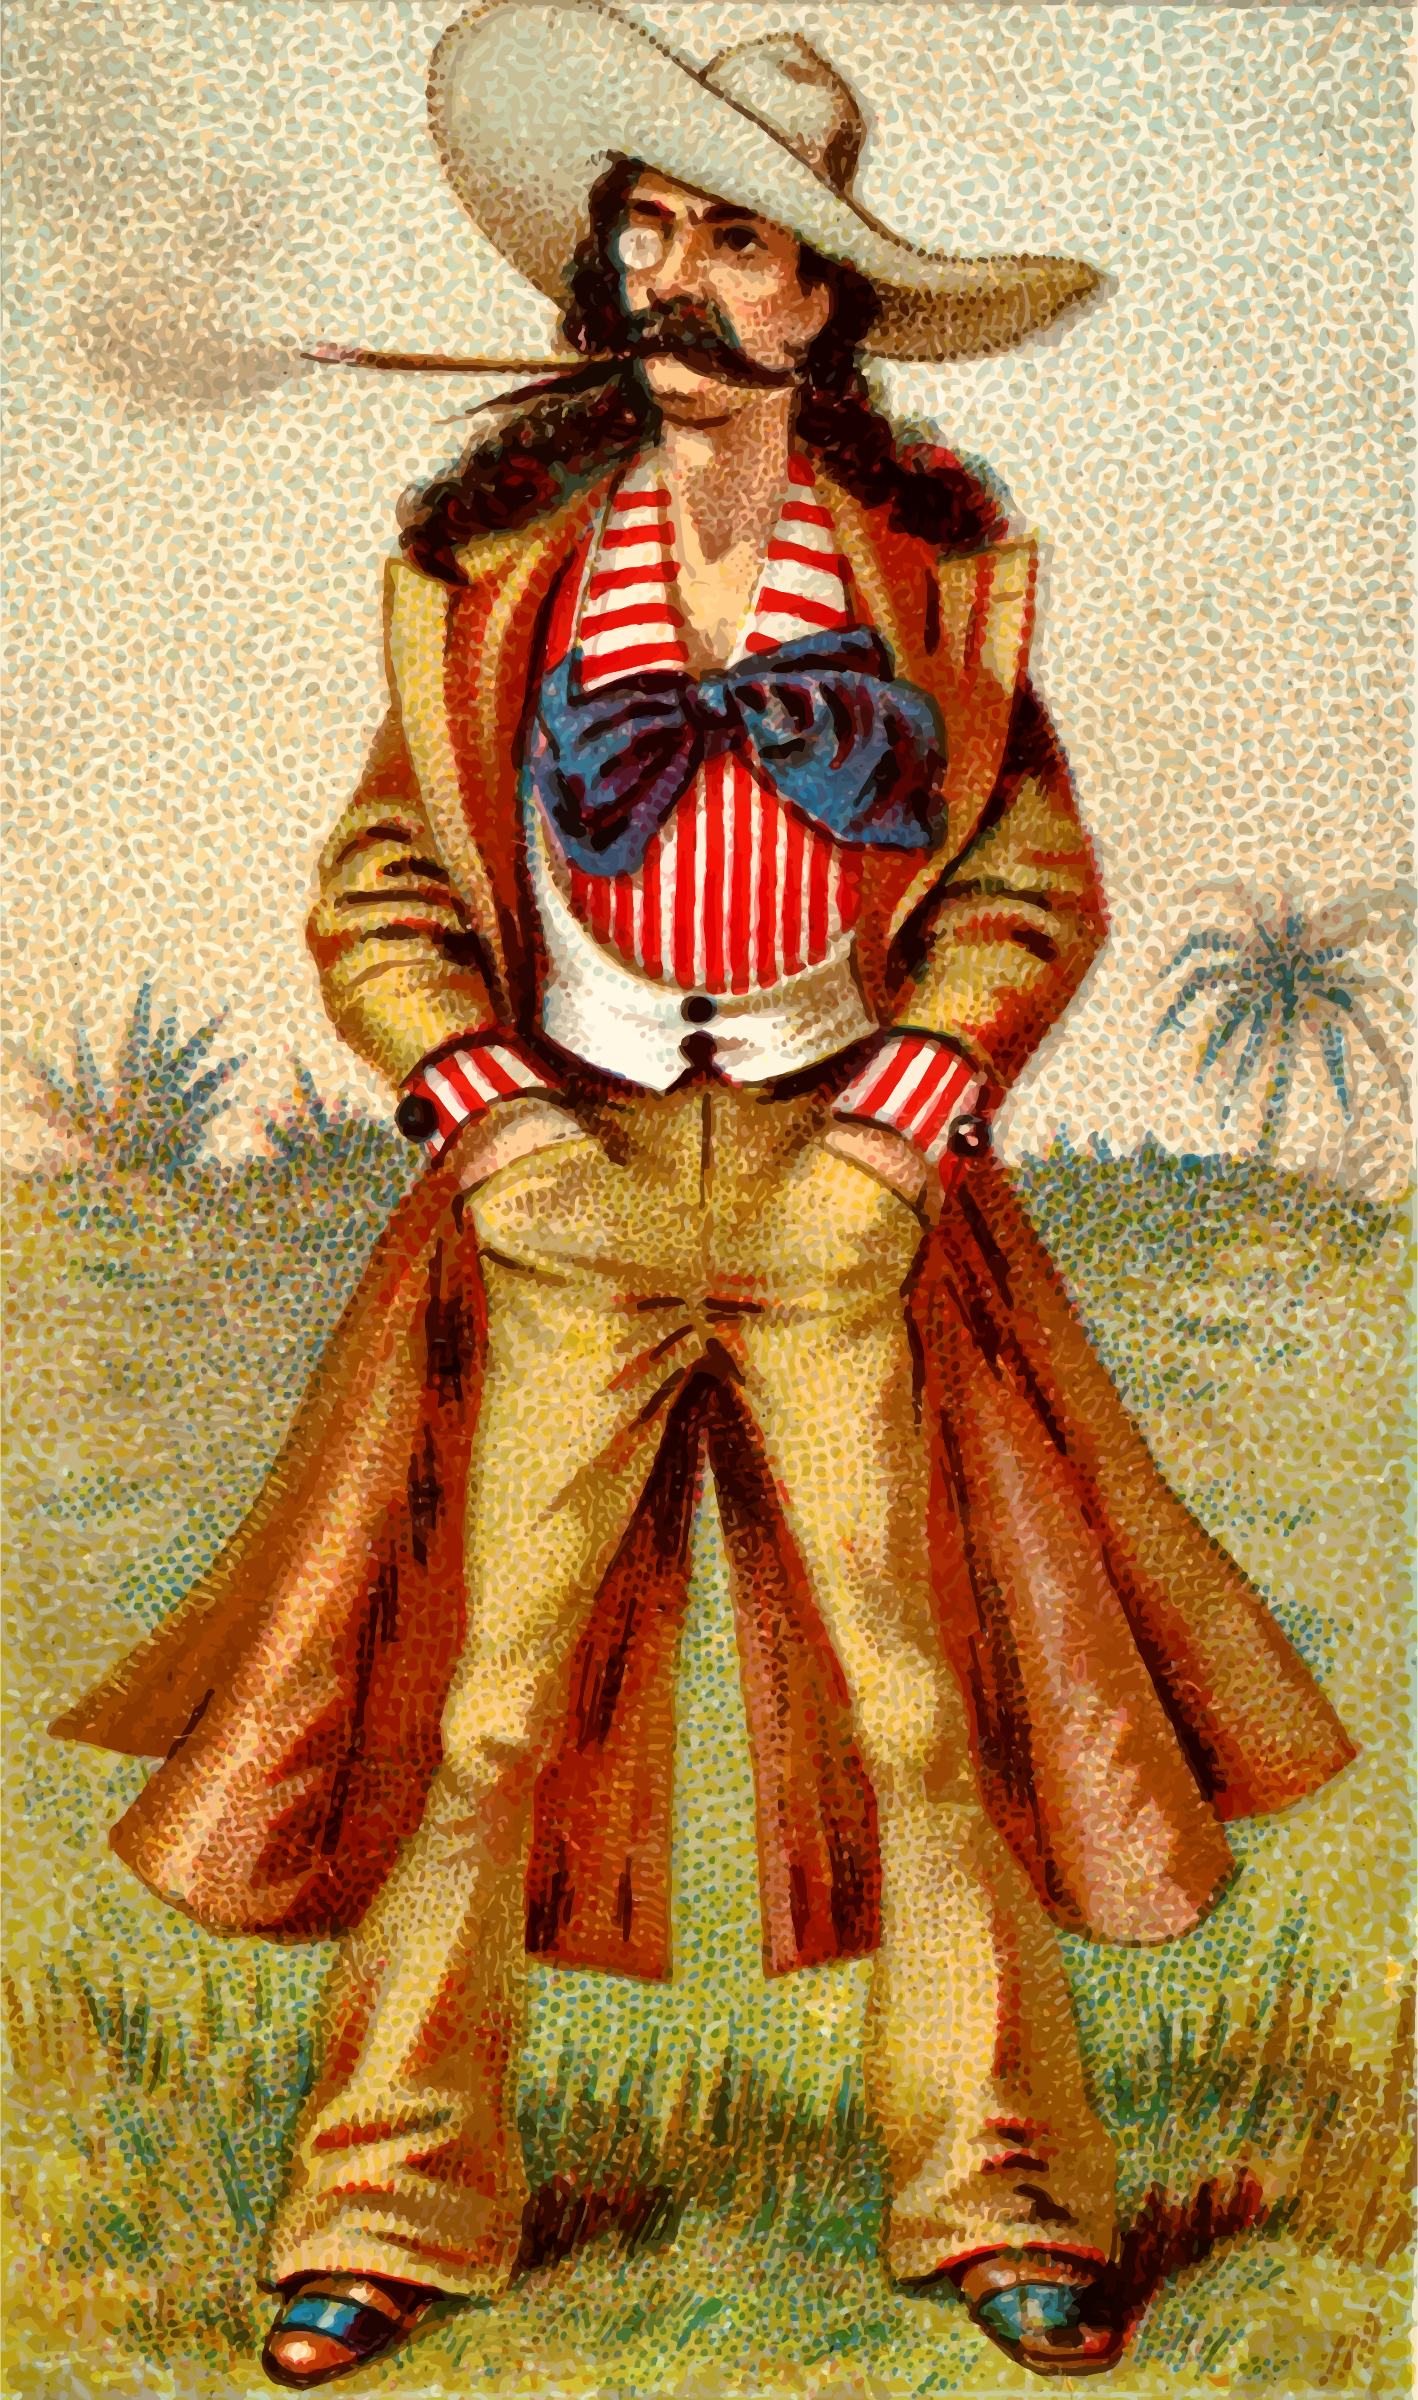 Cigarette card - Mexican by Firkin